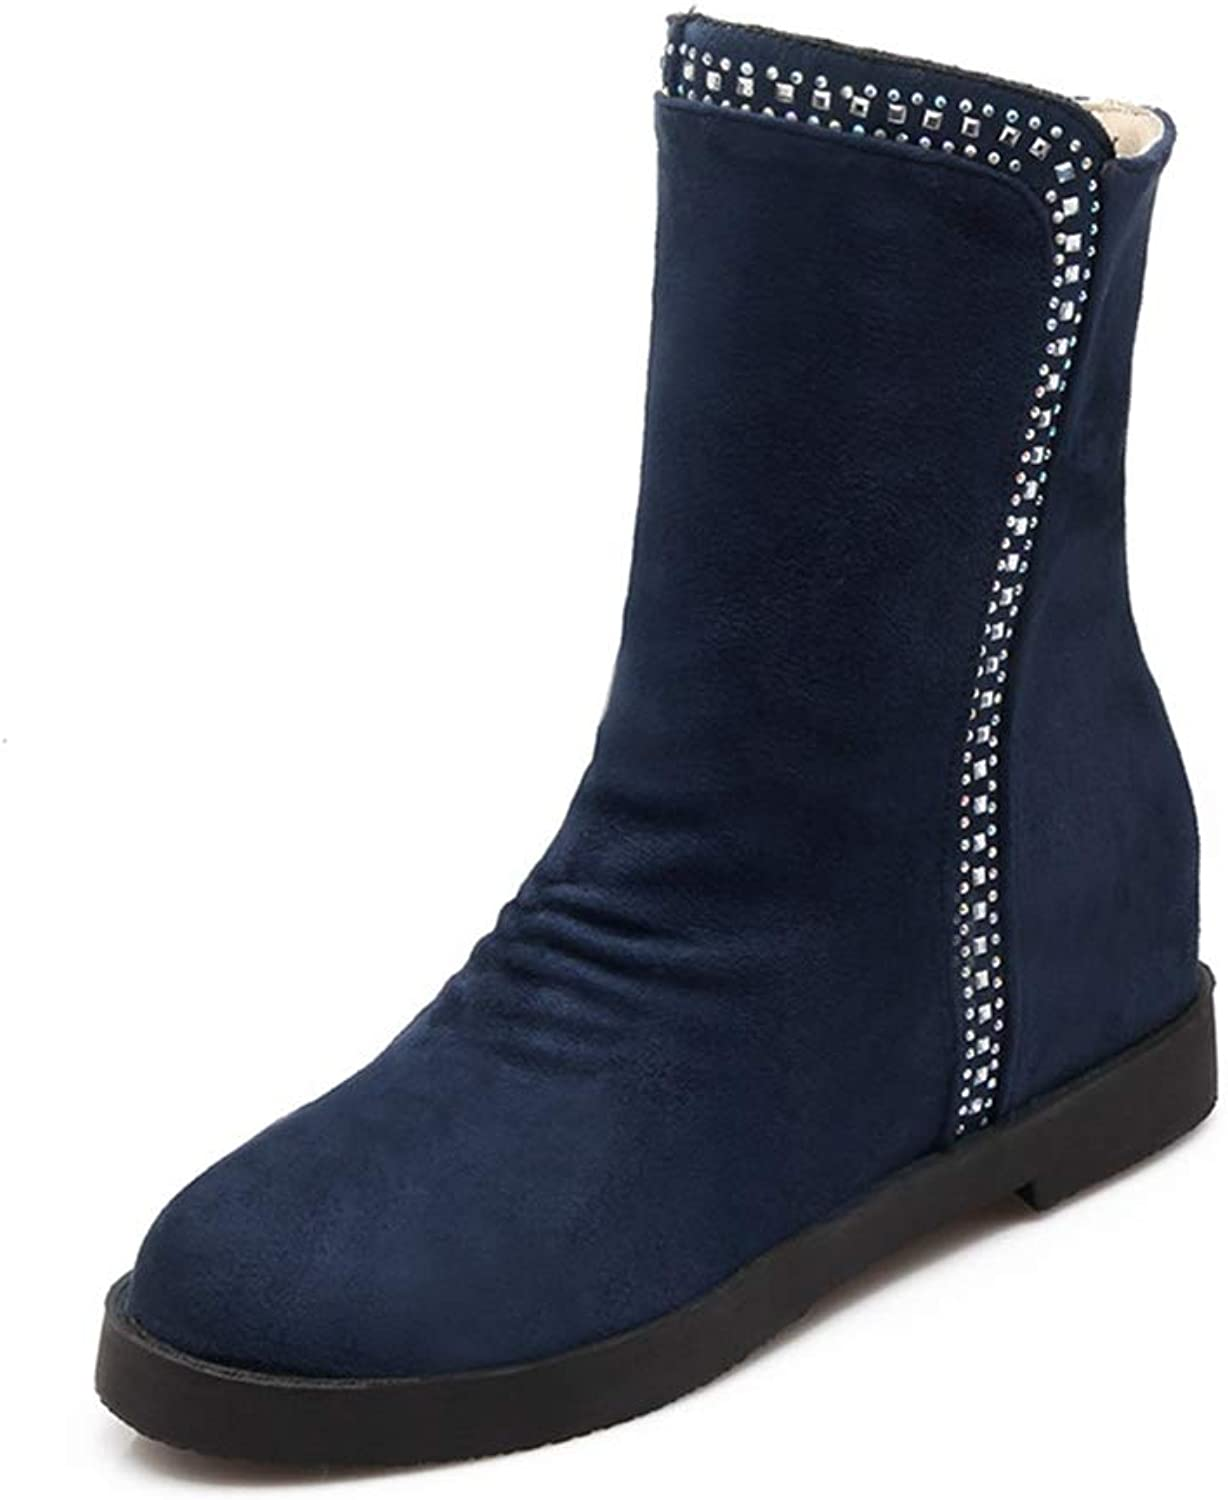 Women's Mid-Calf Boots Wedge Height Increasing Woman Short Boots Warm Comfort shoes